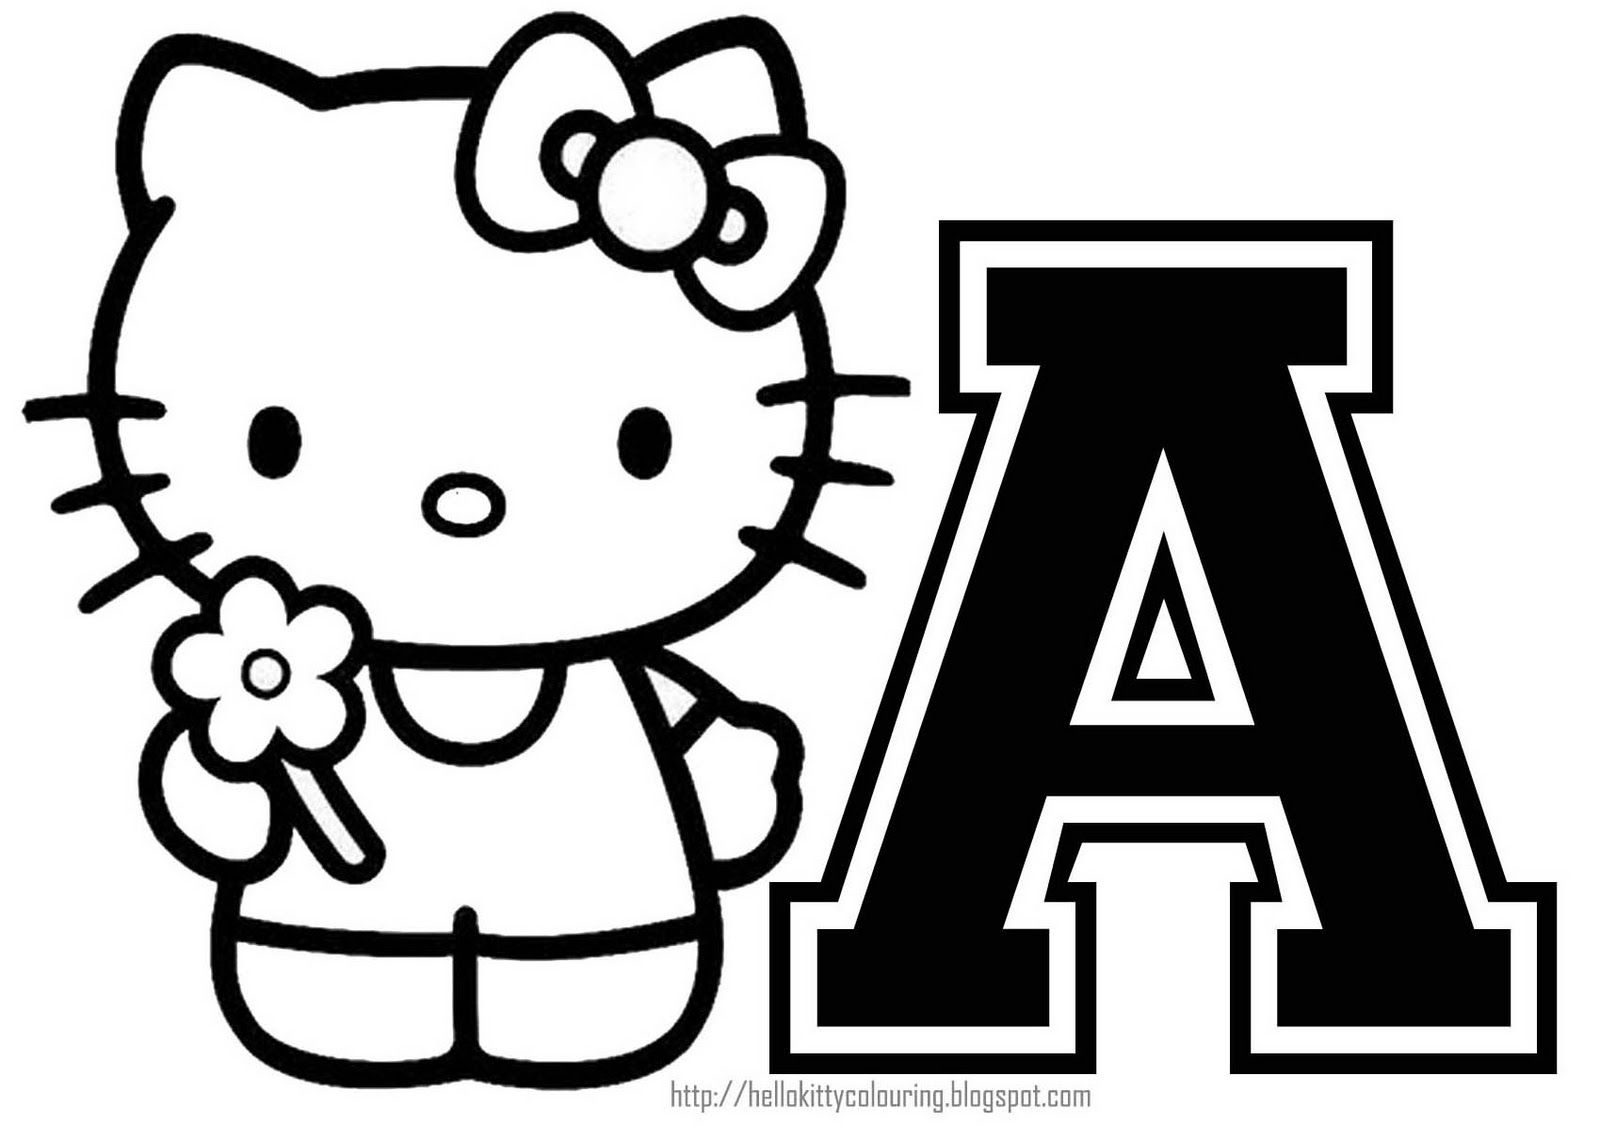 Hello Kitty Coloring Personalized Coloring Page Initial Letter Hello Kitty Hello Kitty Coloring Hello Kitty Colouring Pages Kitty Coloring